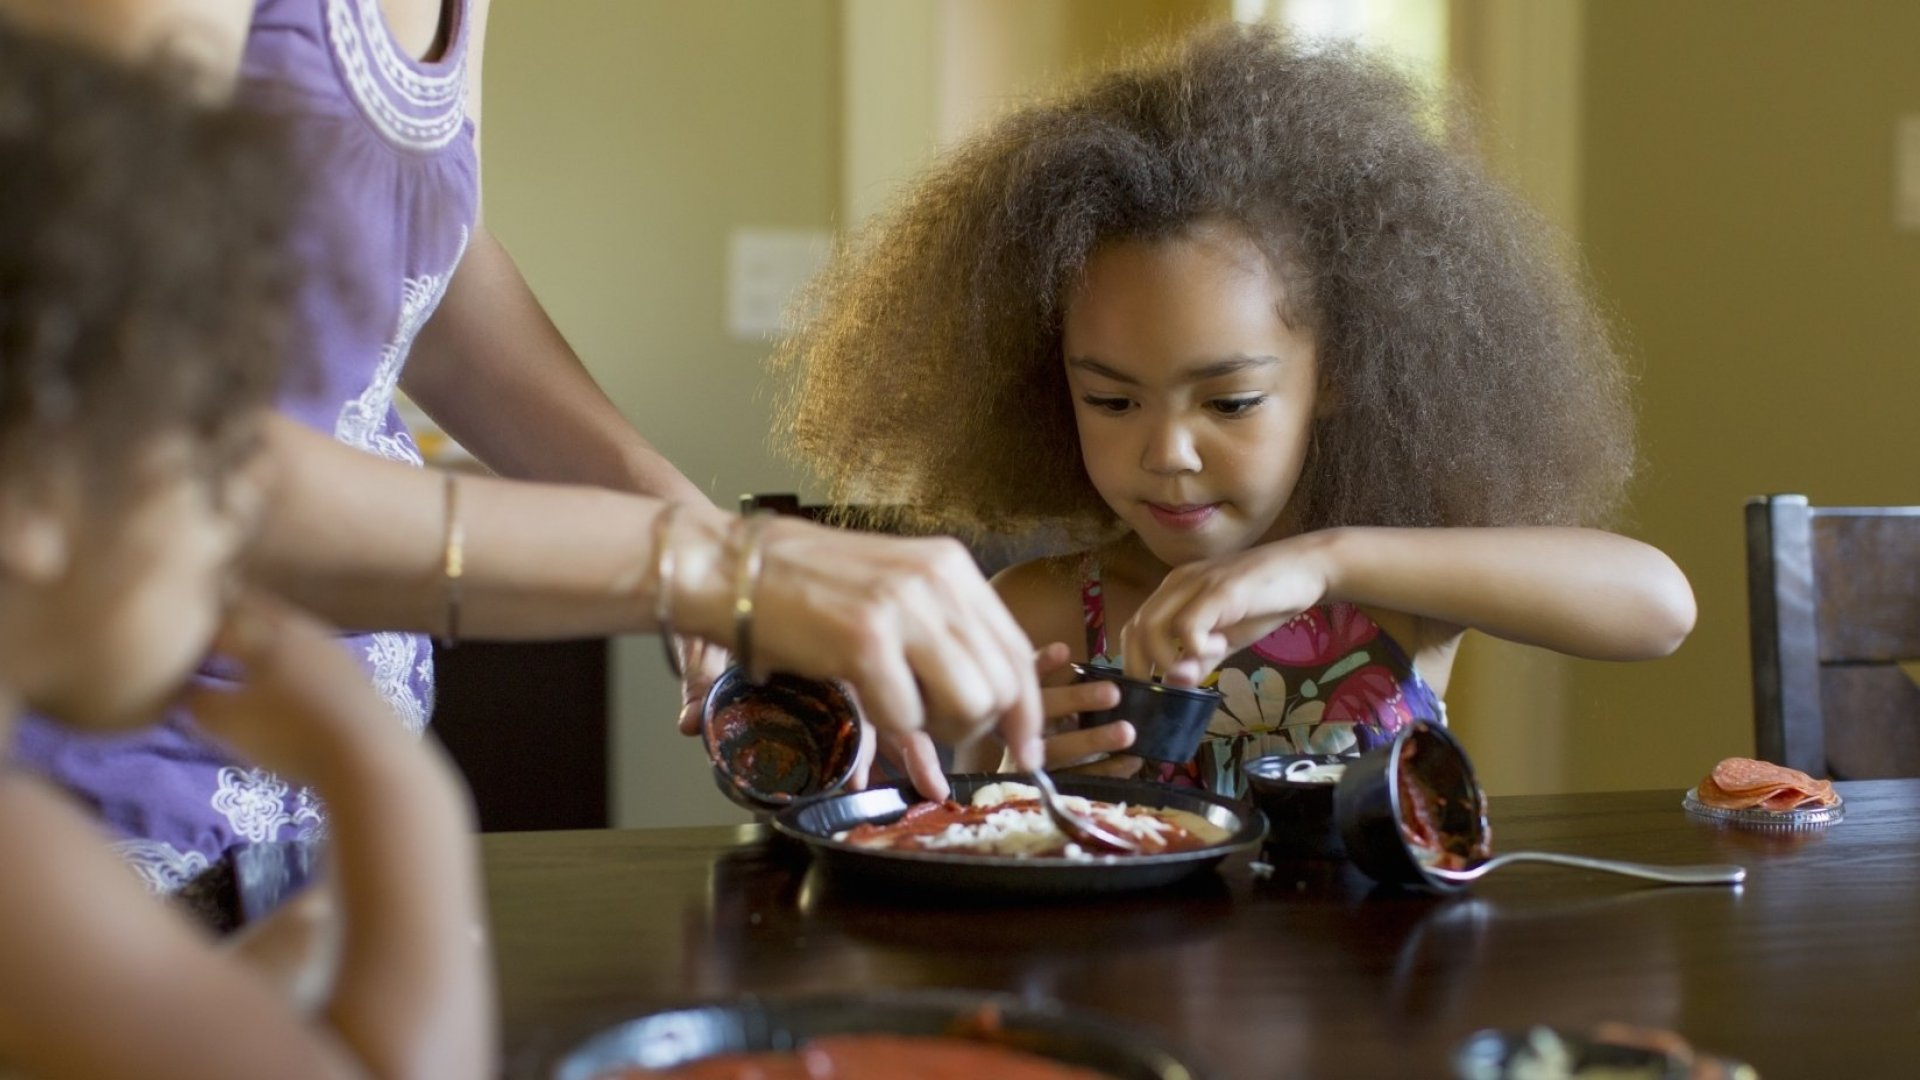 Busy Parents: Stop Feeling Guilty for Not Spending More Time With Your Kids